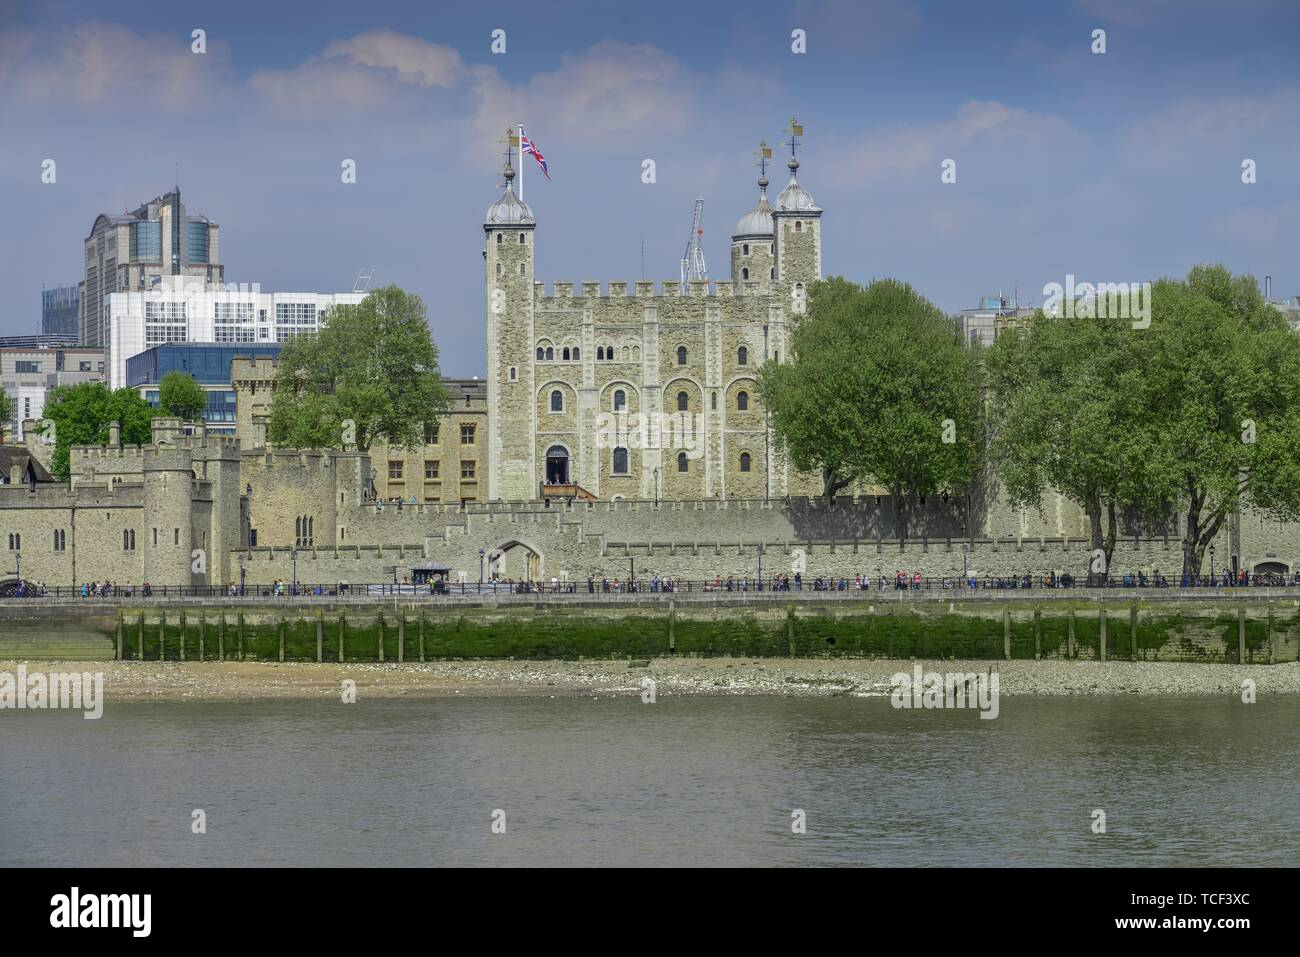 Tower of London on the River Thames, London, England, United Kingdom - Stock Image